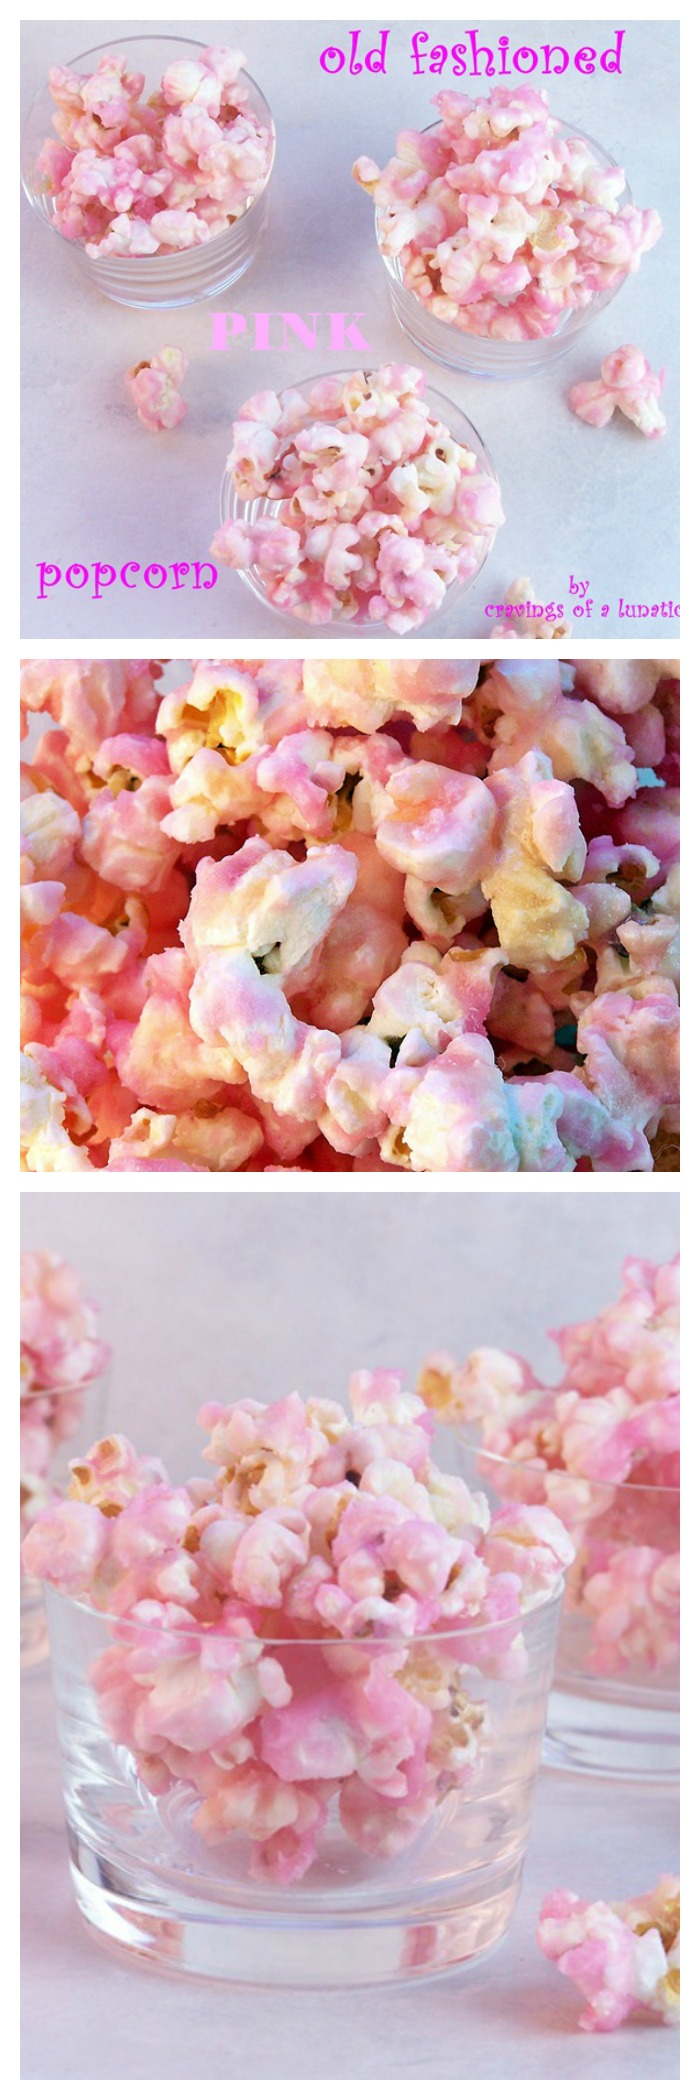 Old Fashioned Pink Popcorn from cravingsofalunatic.com- Old fashioned pink candy popcorn, it's seriously delicious and reminds me of my childhood. I hope you love it as much as I do! (@CravingsLunatic)